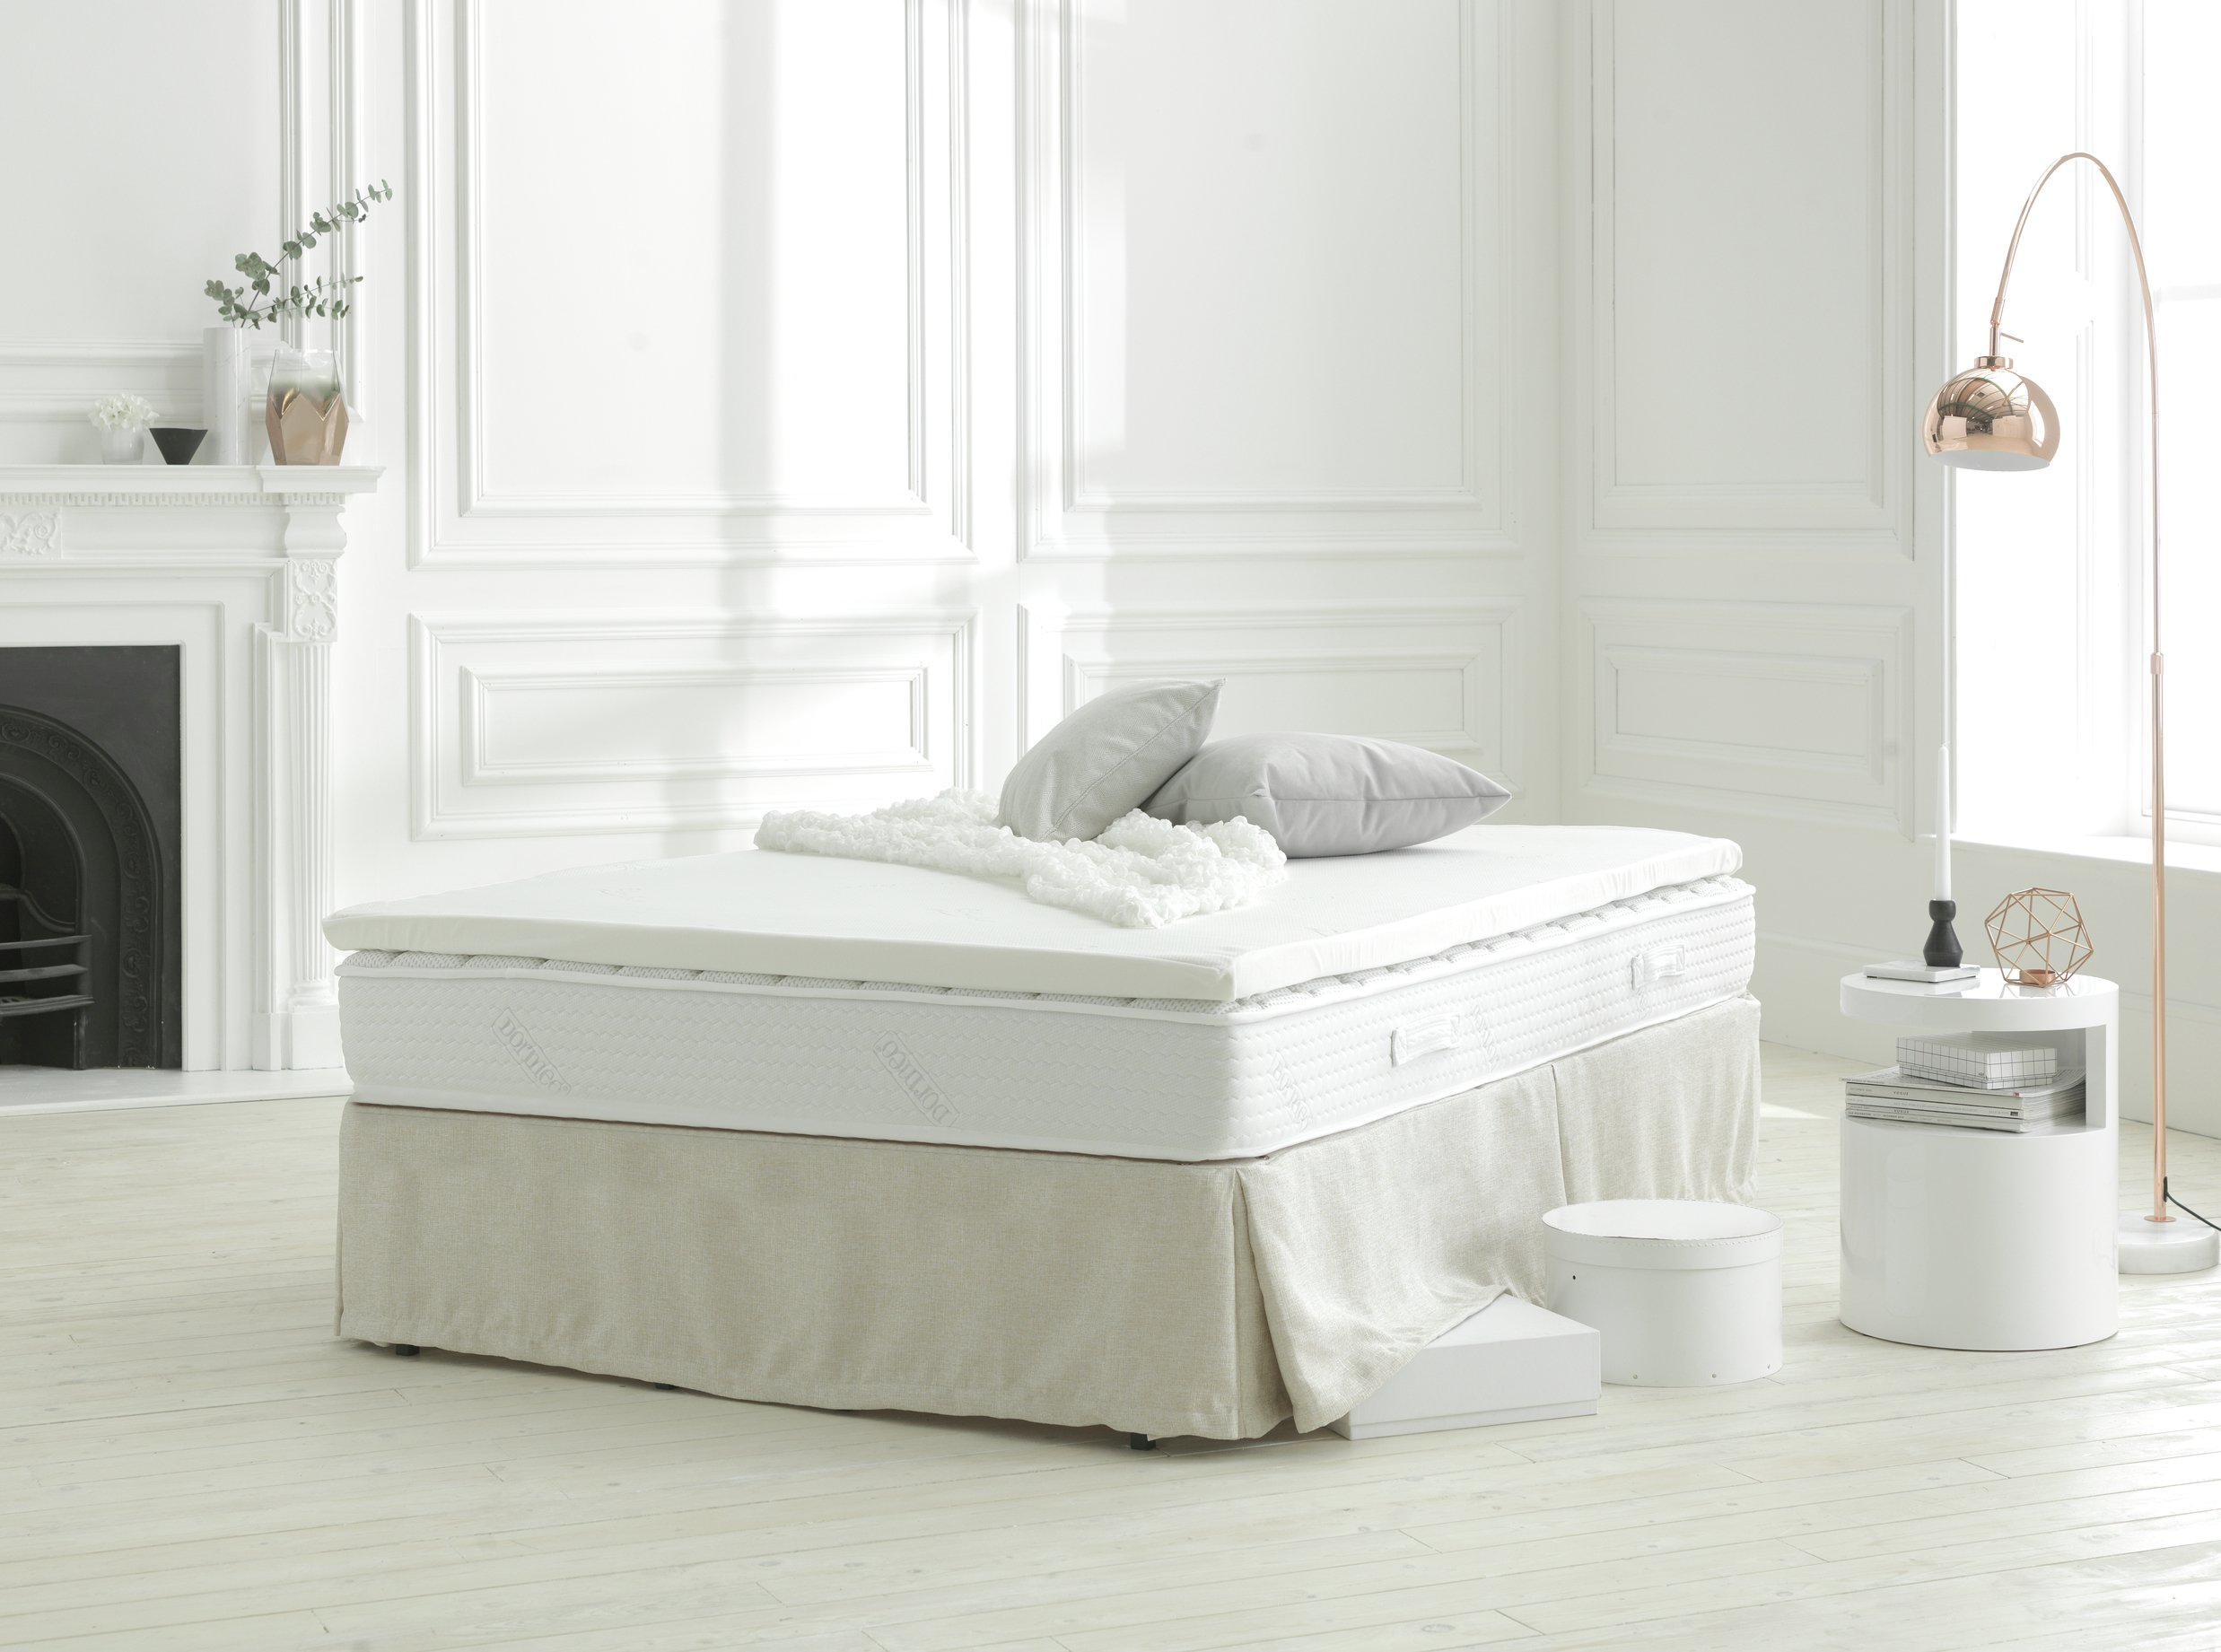 Image of Dormeo Renew Memory Mattress Topper - Single